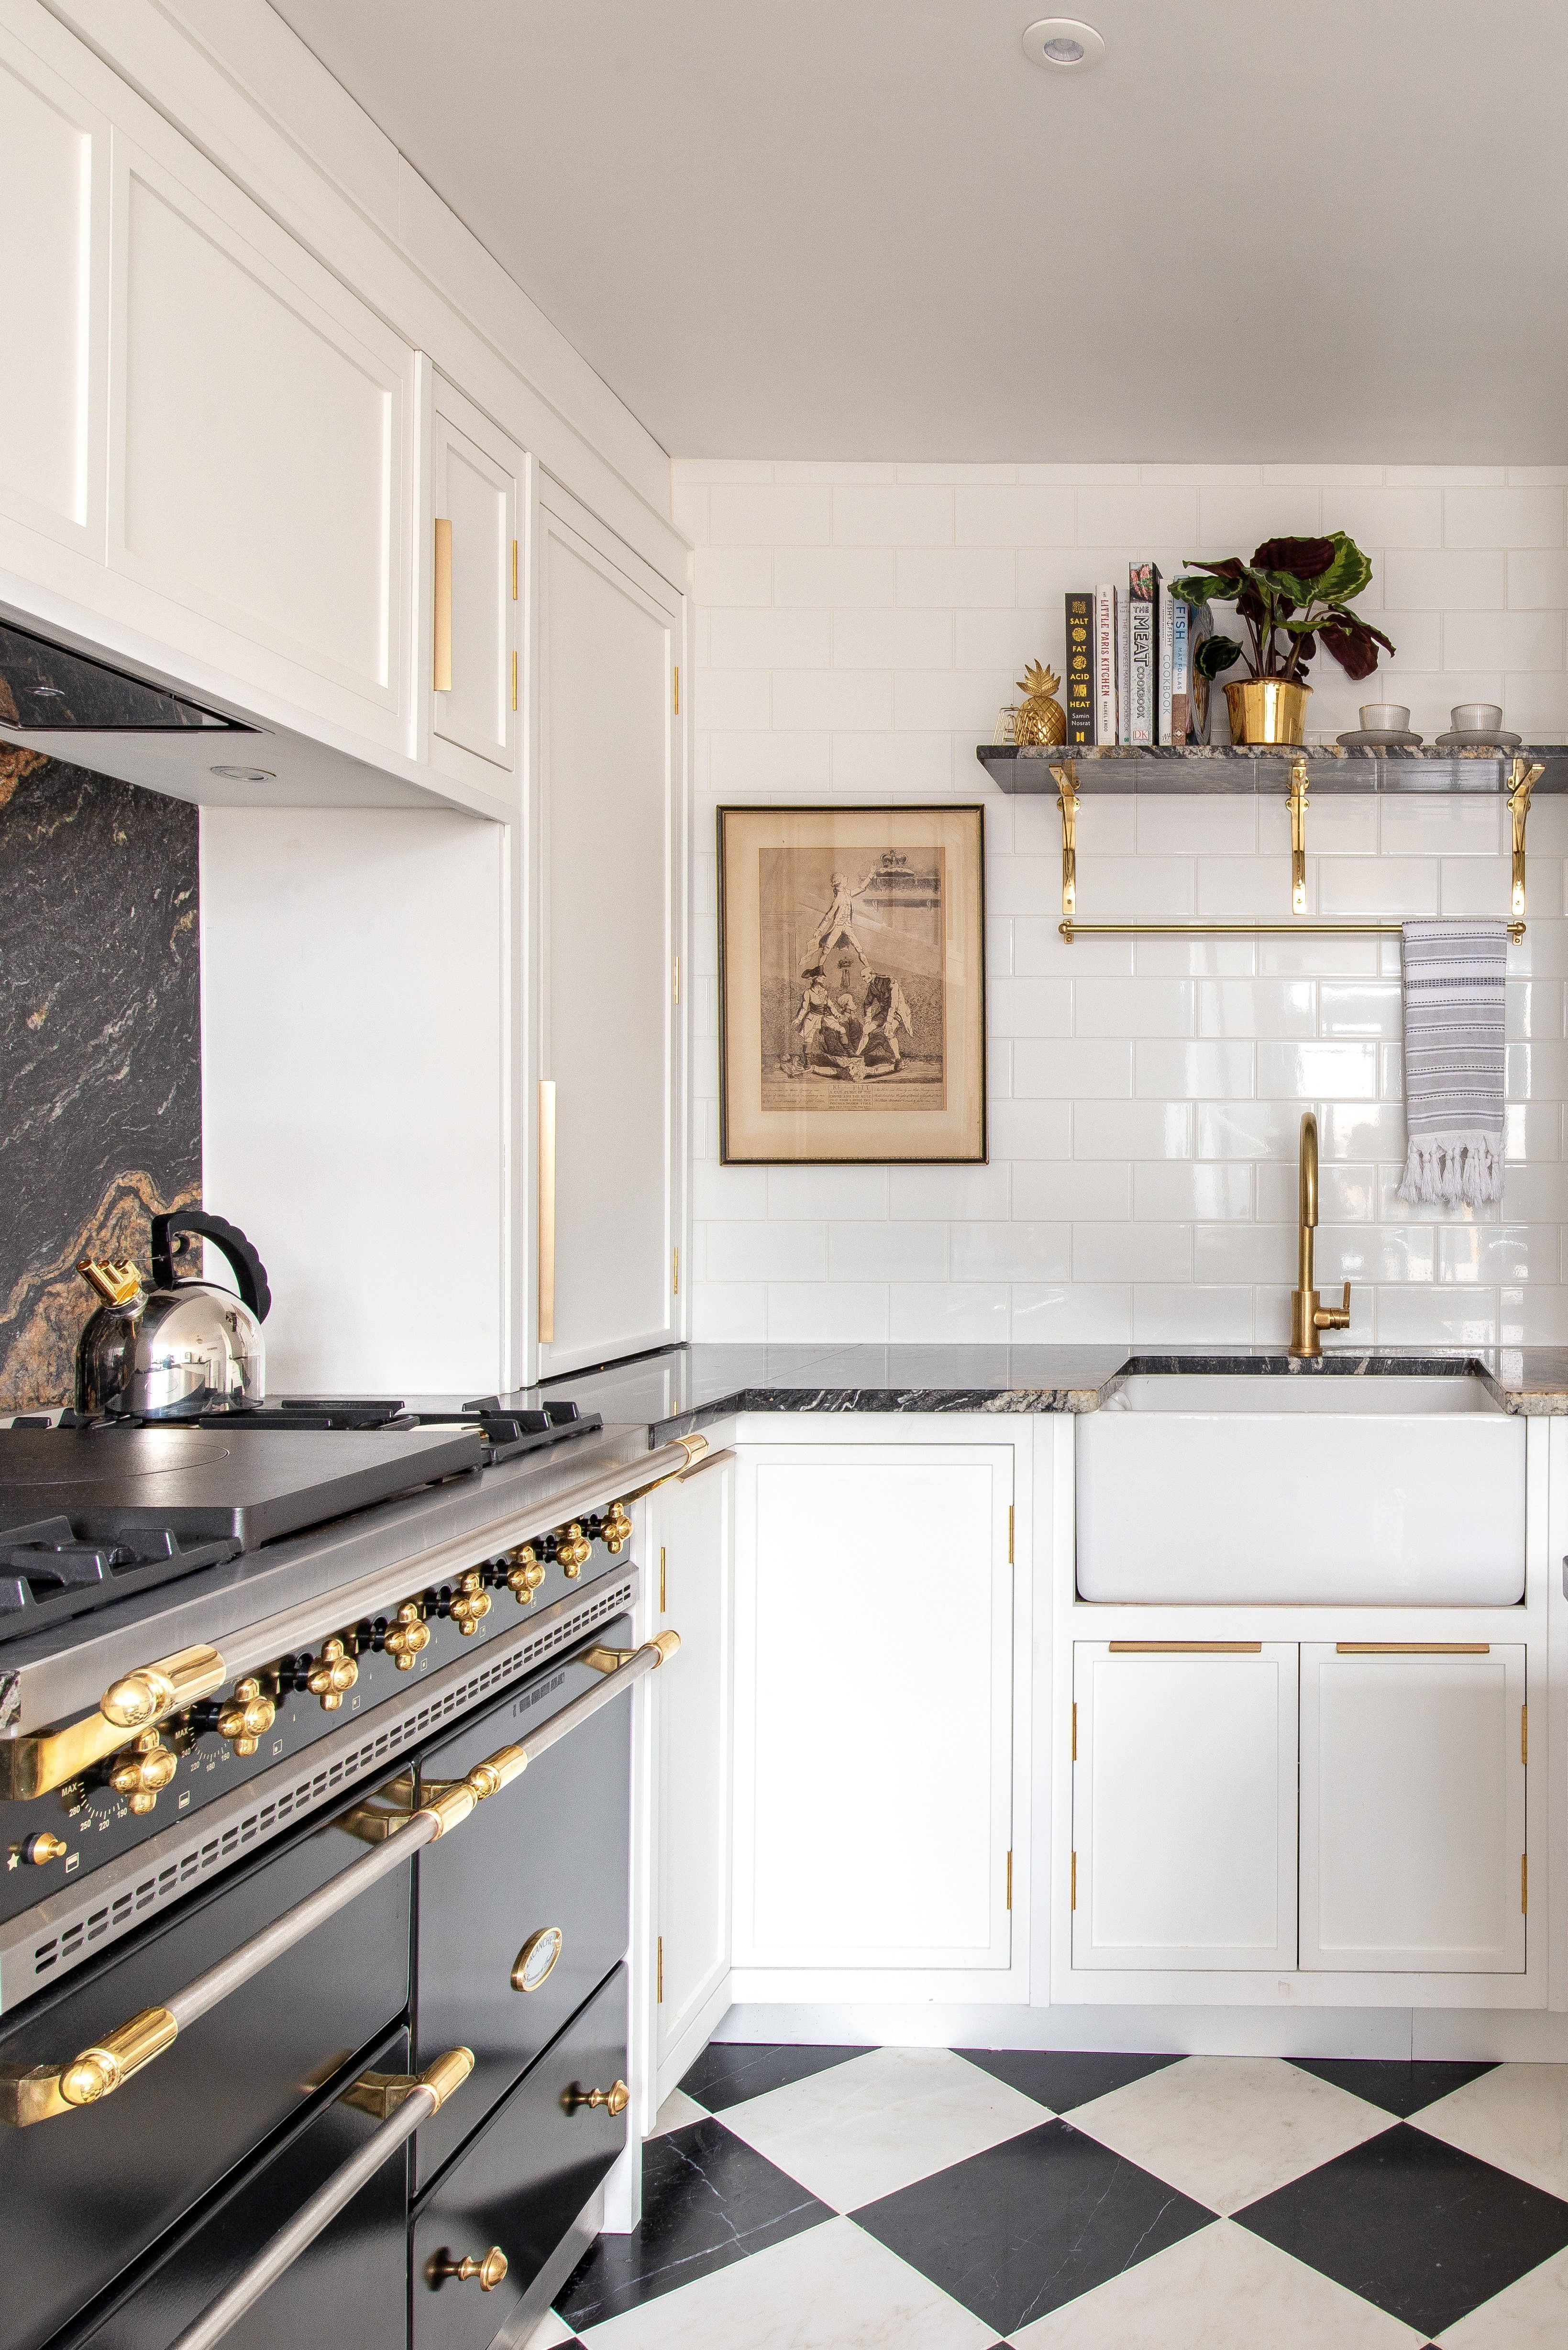 We Have All Loved Working On This Bespoke Kitchen In Shoreditch The Cabinetry Is Our Westgate Range Hand Pai Kucheneinrichtung Kuchendesign Kuchen Inspiration